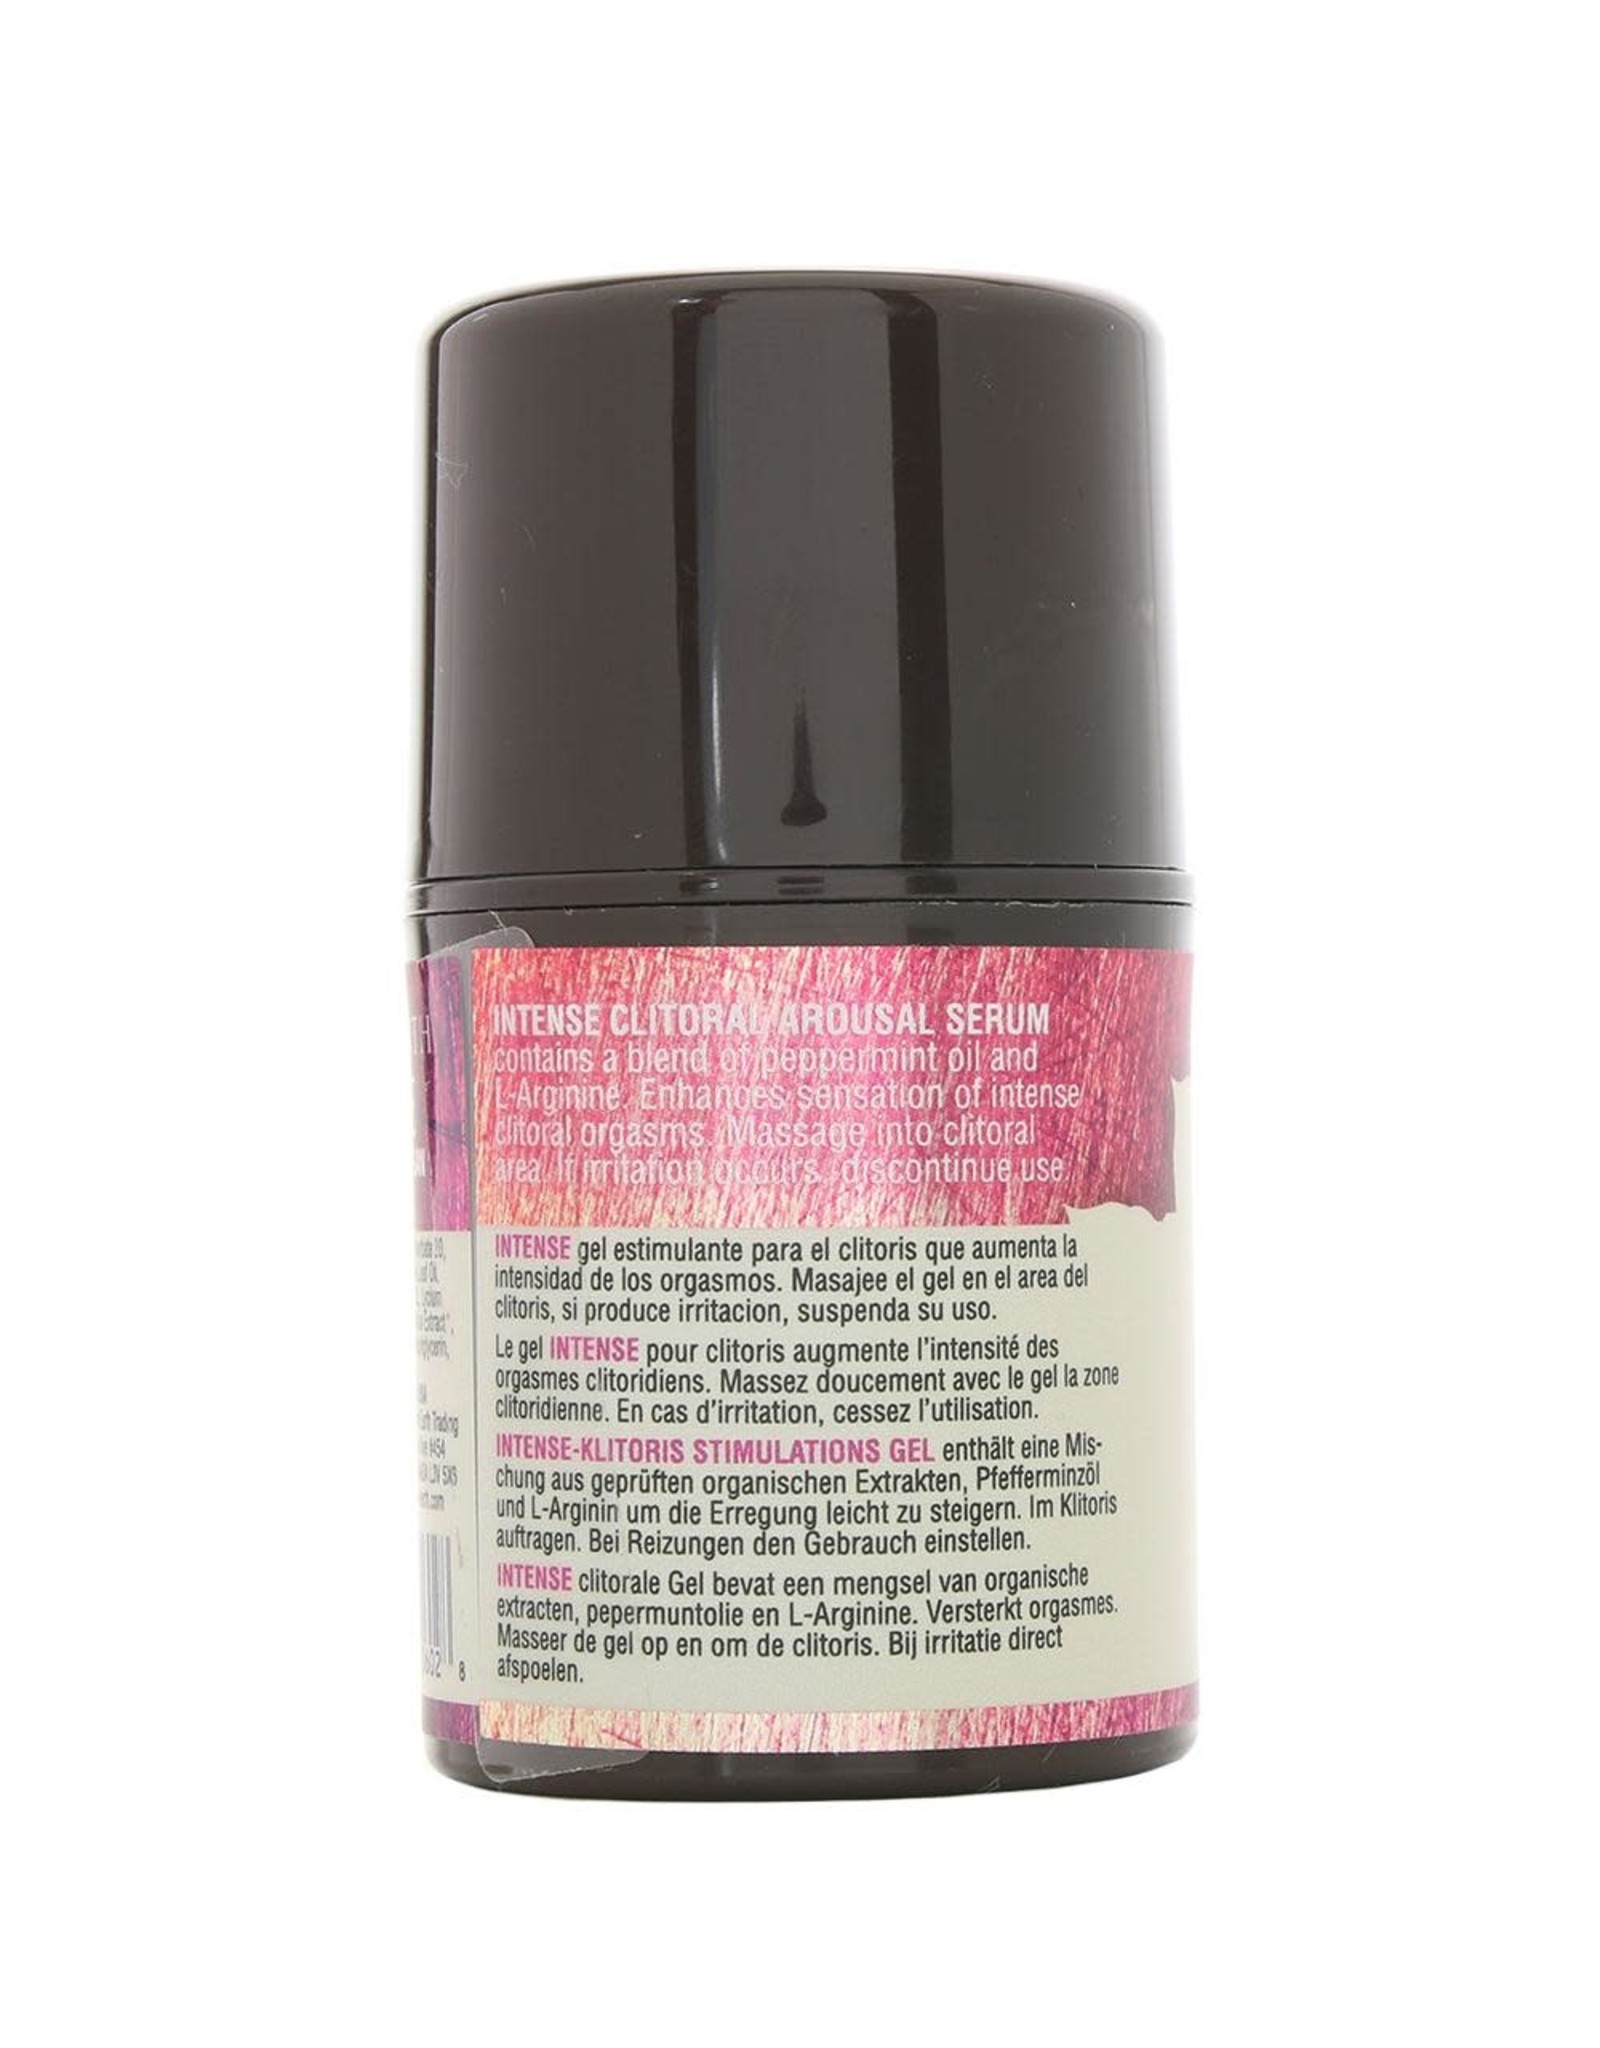 Intimate Earth Intimate Earth Clitoral Arousal Serum - 1 oz